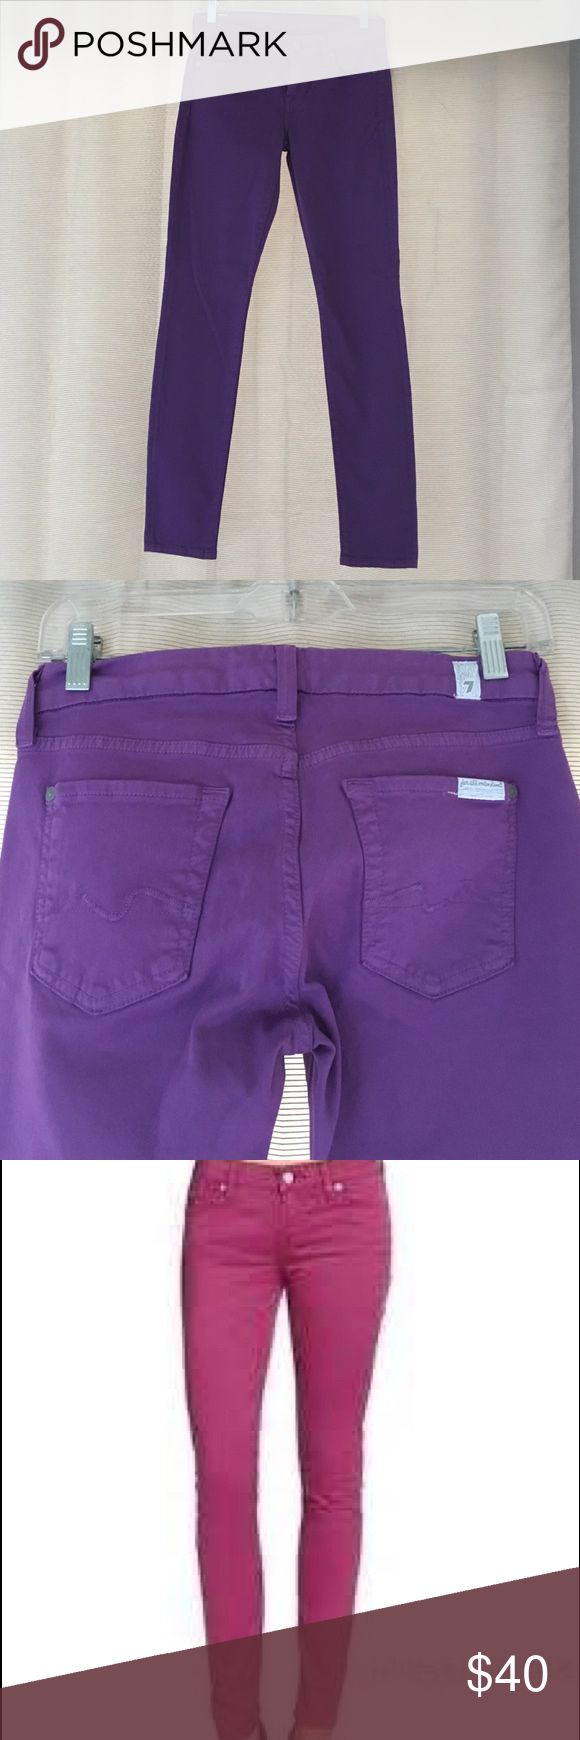 NWOT 7 For All Mankind purple skinny jeans Brand new, never worn! Purple 'gwenevere' skinny jeans. Size 25 7 for all Mankind Jeans Skinny